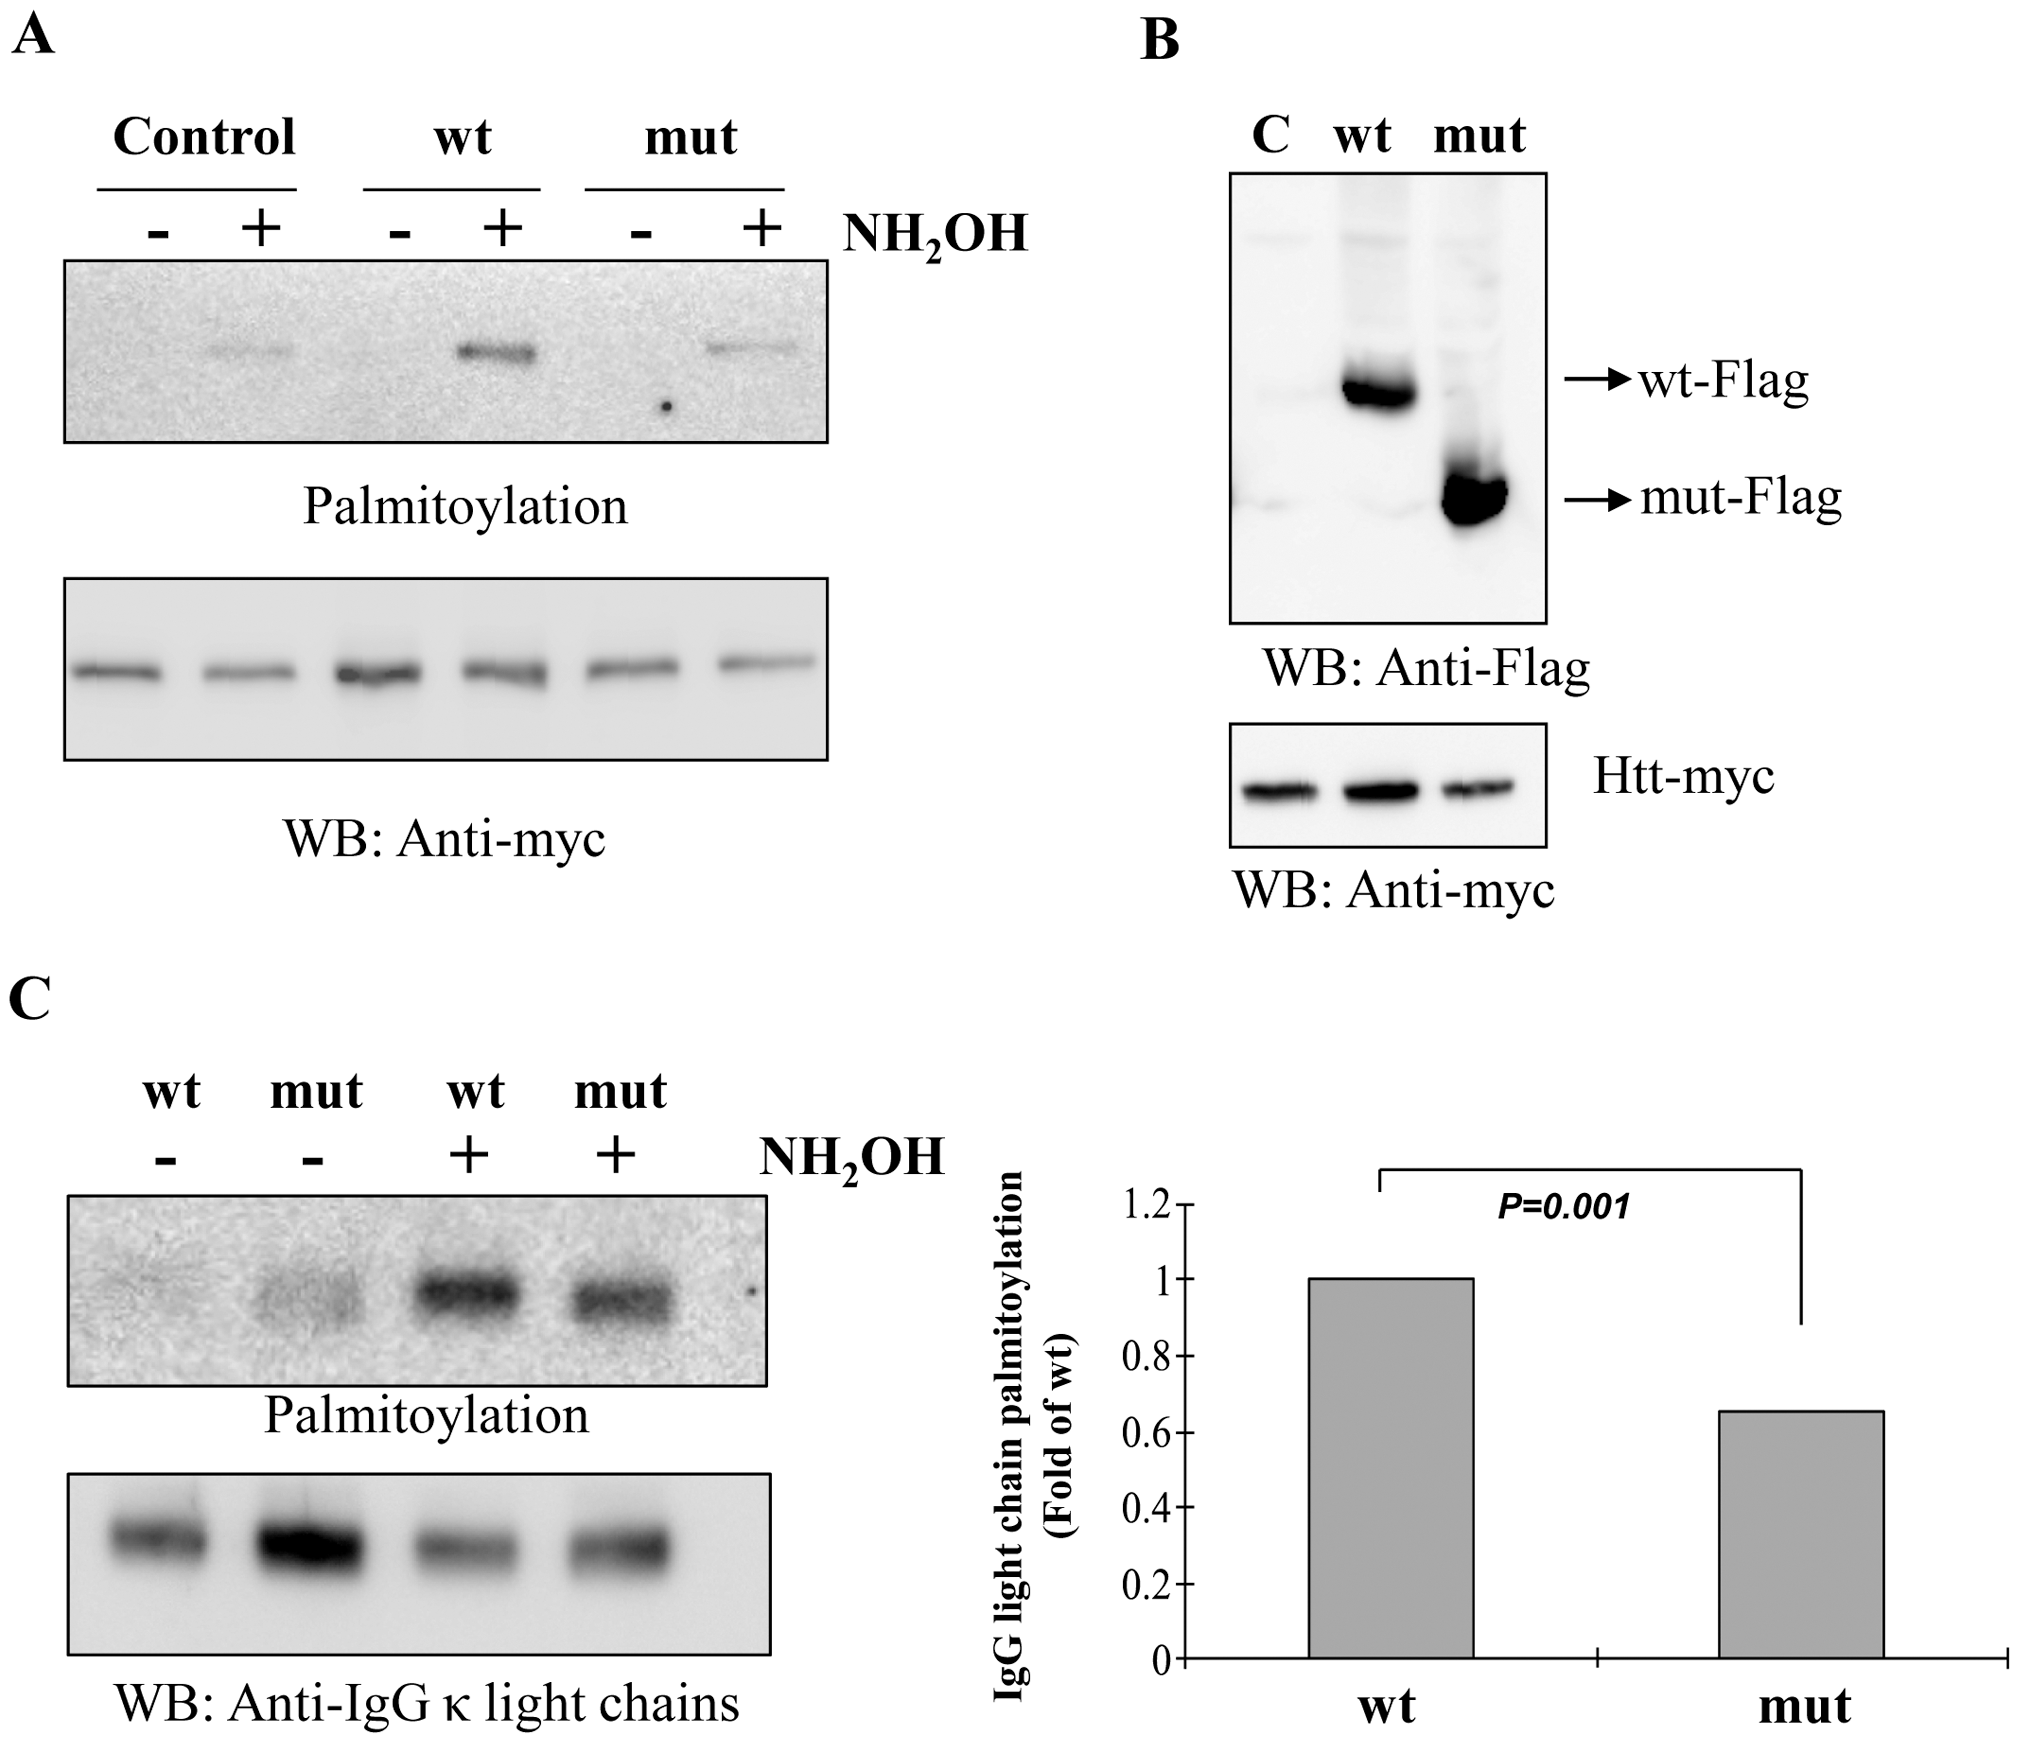 Palmitoyl-acyl transferase (PAT) activity and IgG light chain palmitoylation in the wild-type and mutant mice.